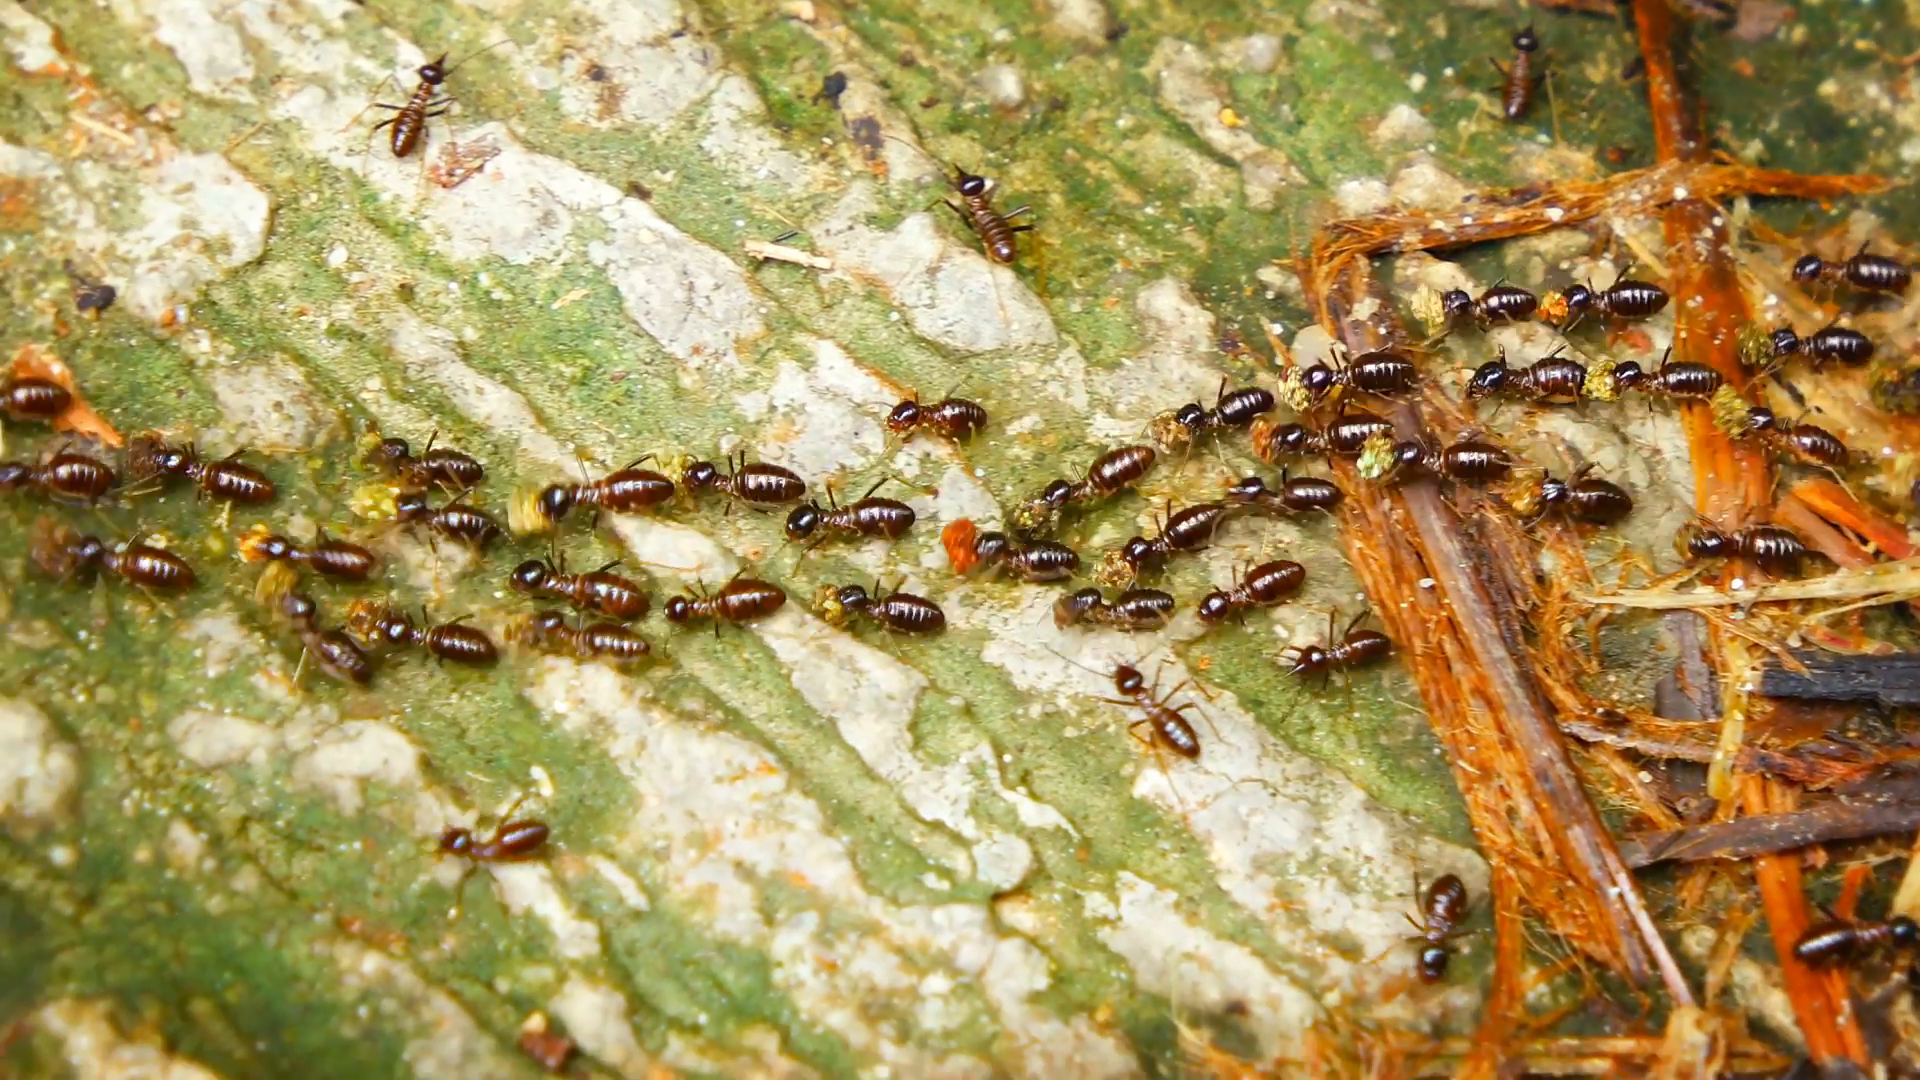 During Drought Termites Protect Tropical Rainforests - Forestrypedia